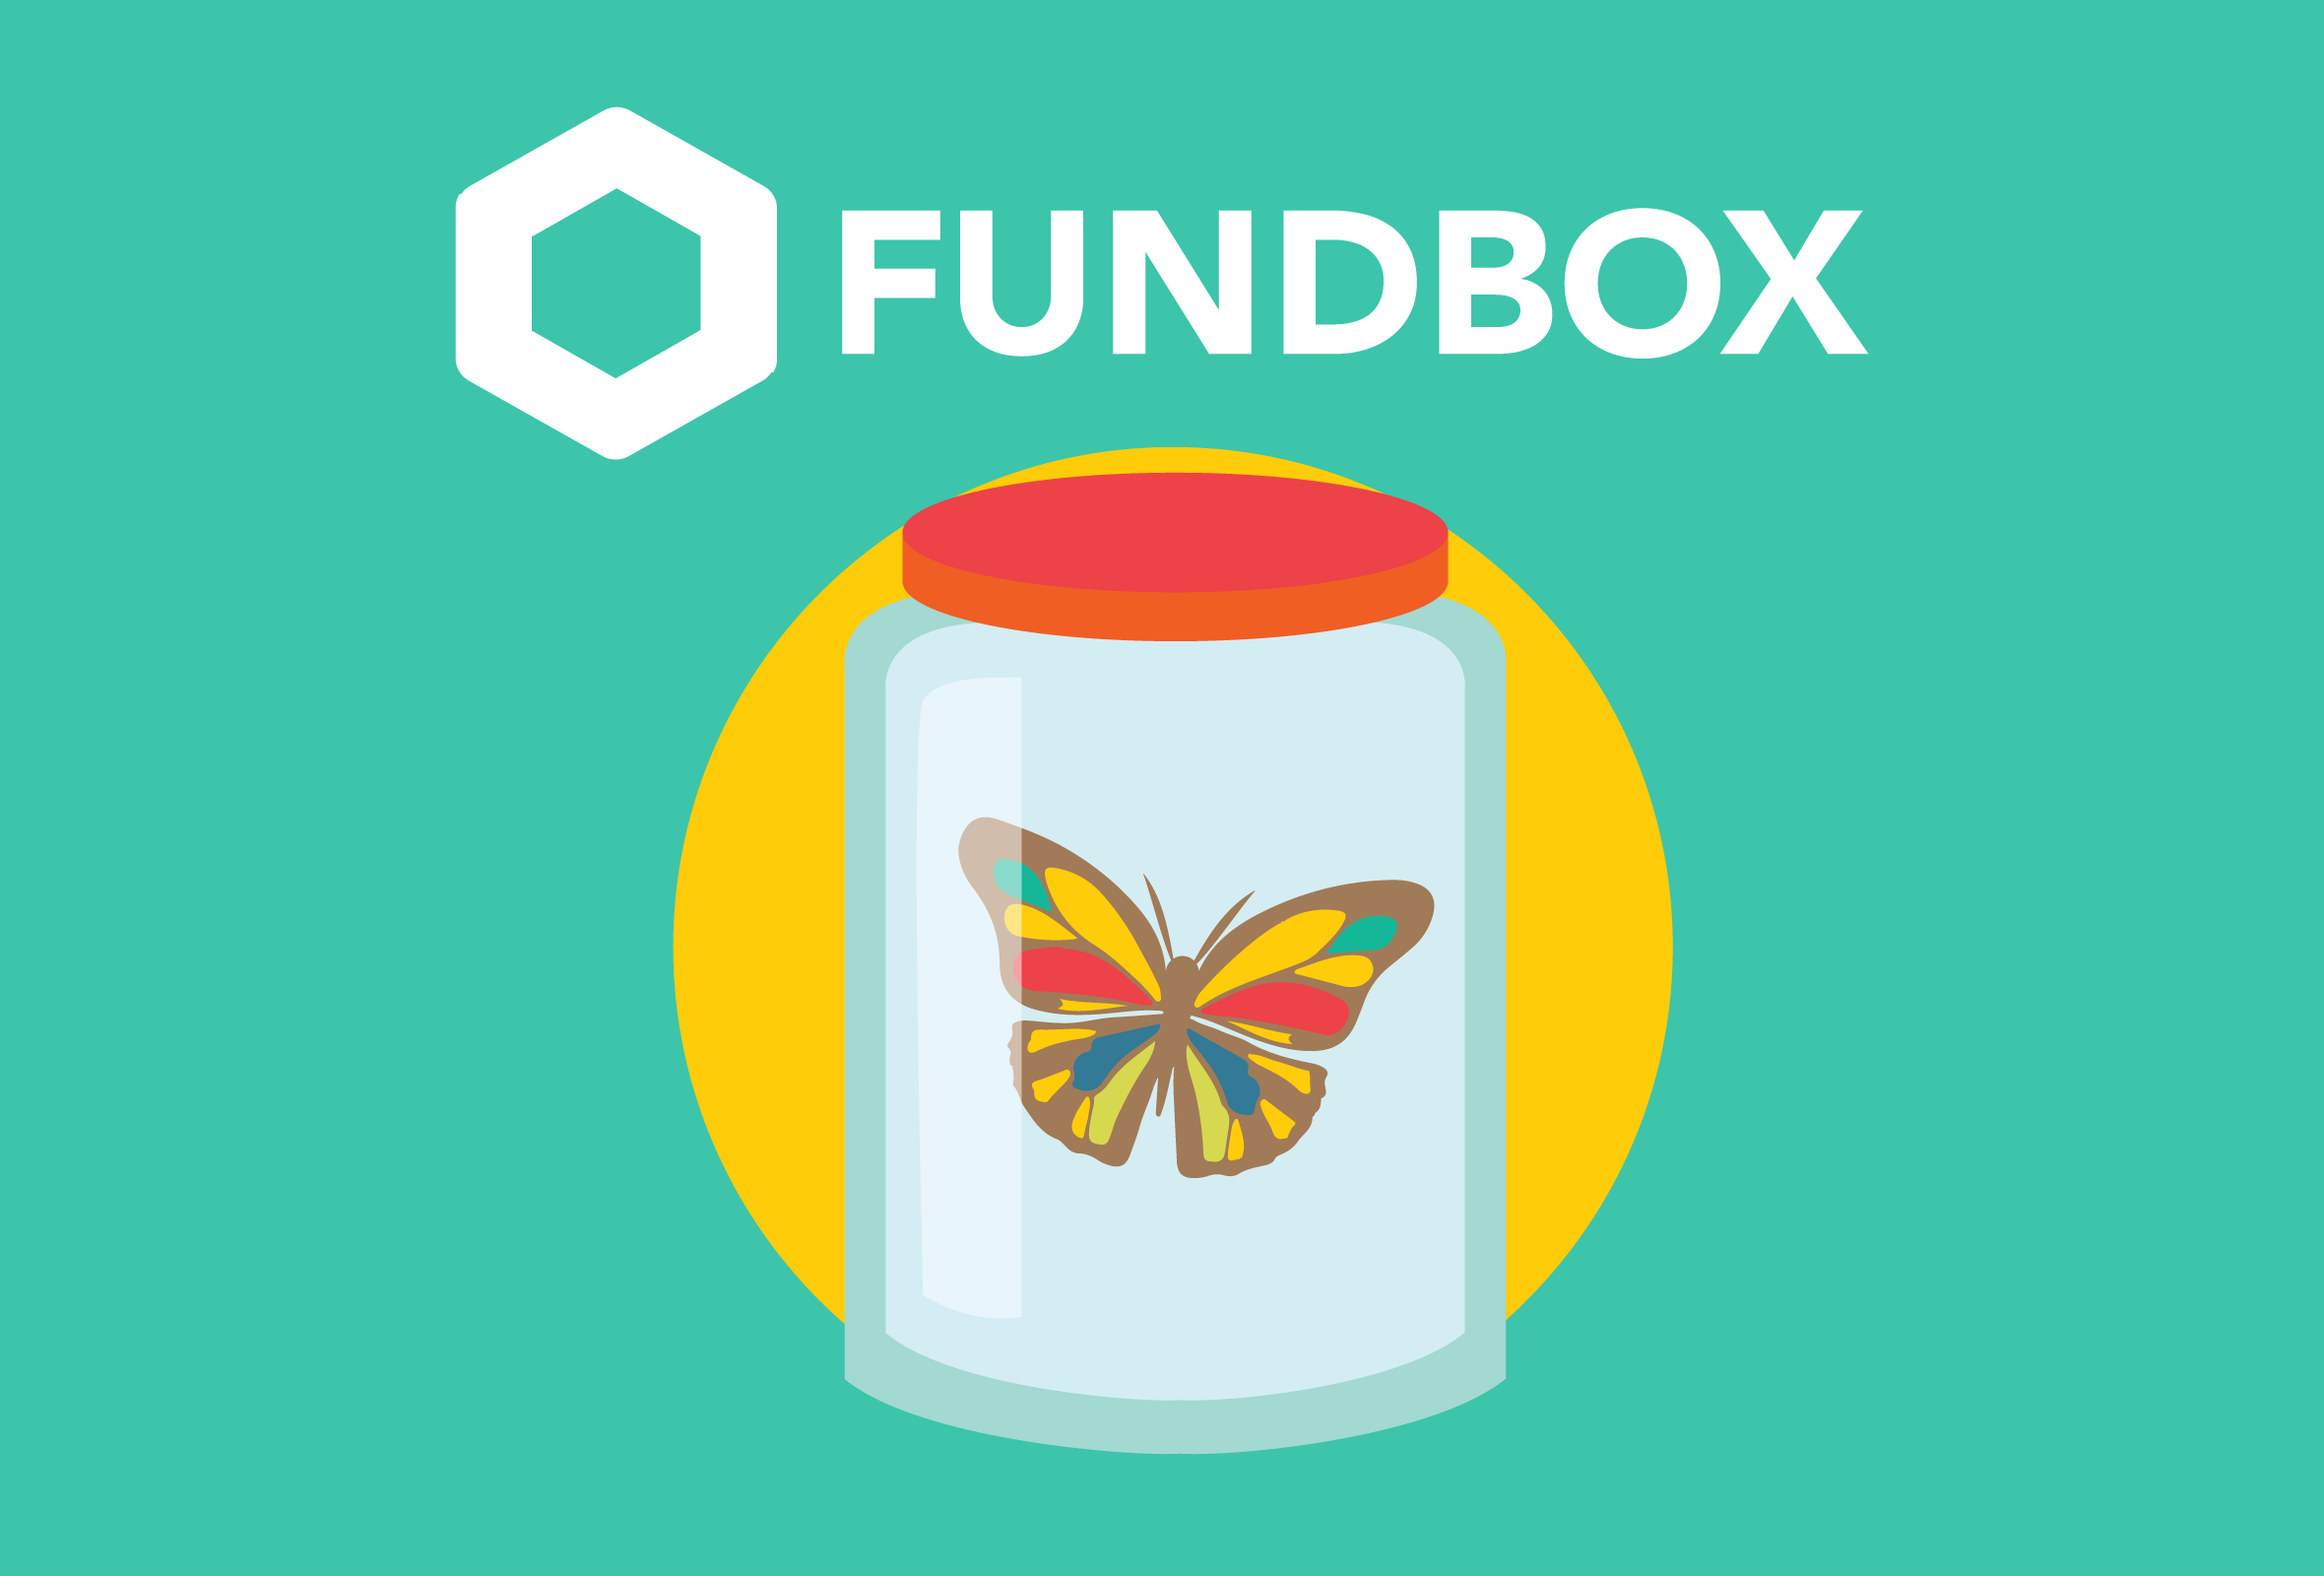 FundBox | What If: Designing Fair & Equal Financial Access for Women